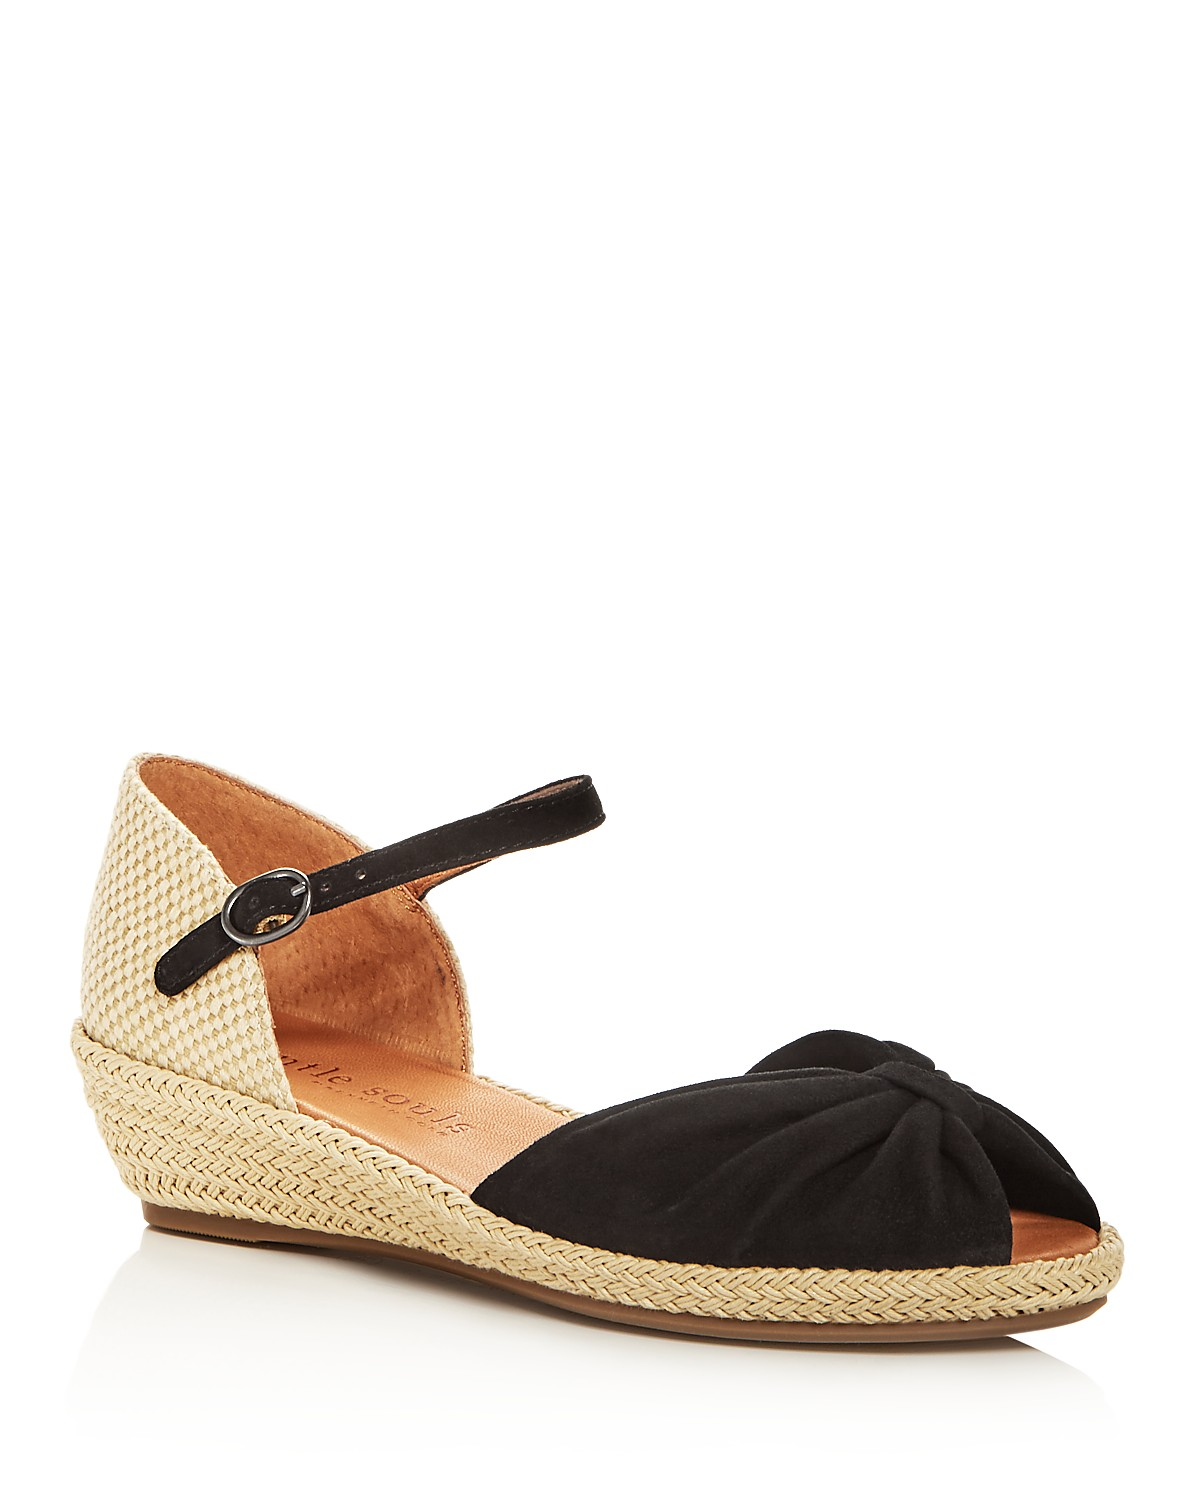 Kenneth Cole Gentle Souls Women's Lucille Suede Demi Wedge Espadrille Sandals lXhWAKMk